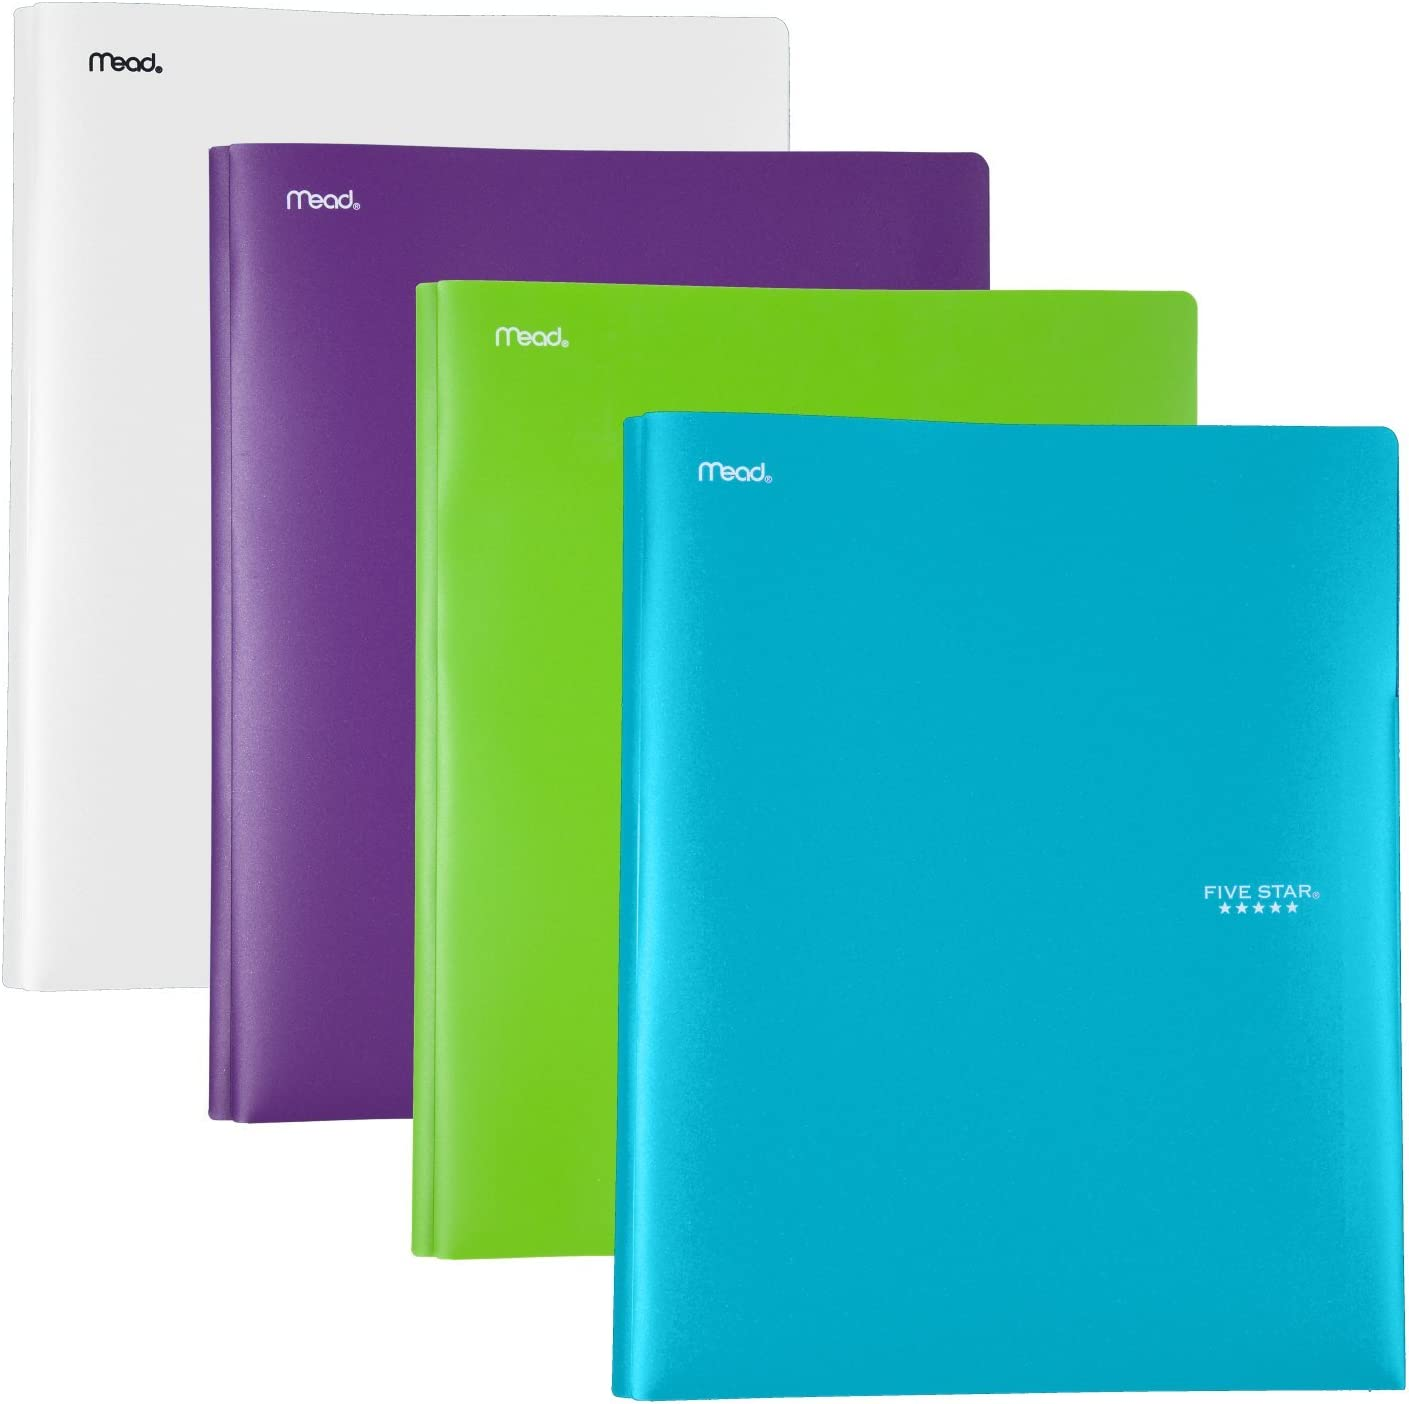 Five Star 2 Pocket Folders with Prong Fasteners, Folders with Pockets, Fits 3 Ring Binder, Plastic, Teal, White, Purple, Lime, 4 Pack (38136)